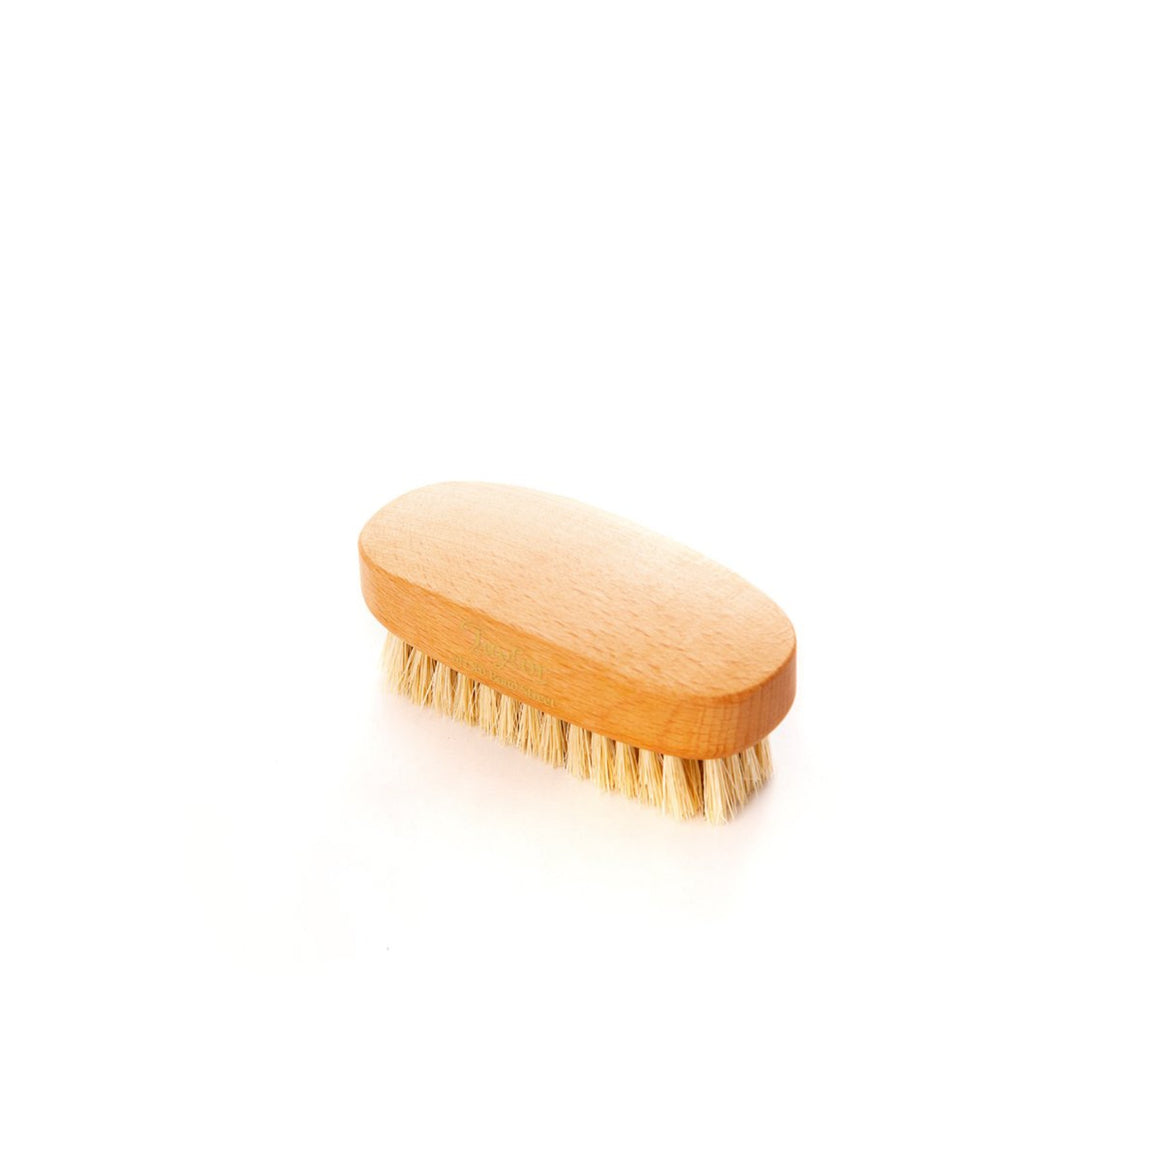 Medium Pure Bristle Nail Brush